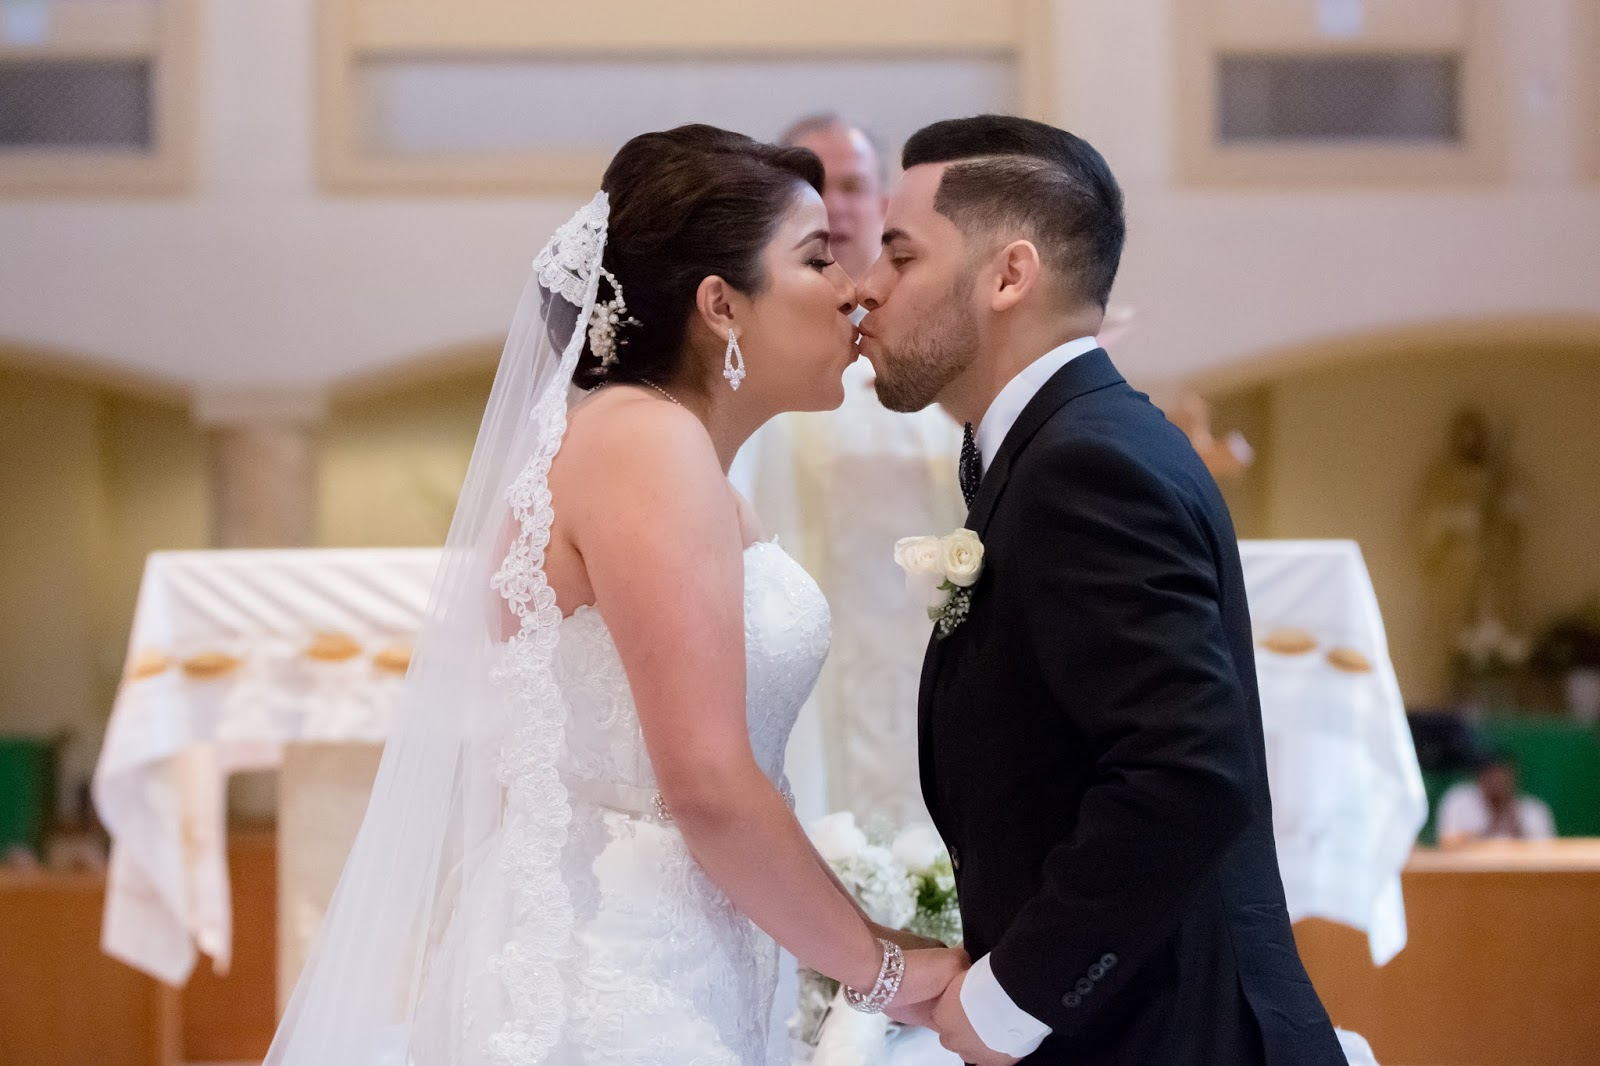 Bride and Groom Official Wedding Kiss